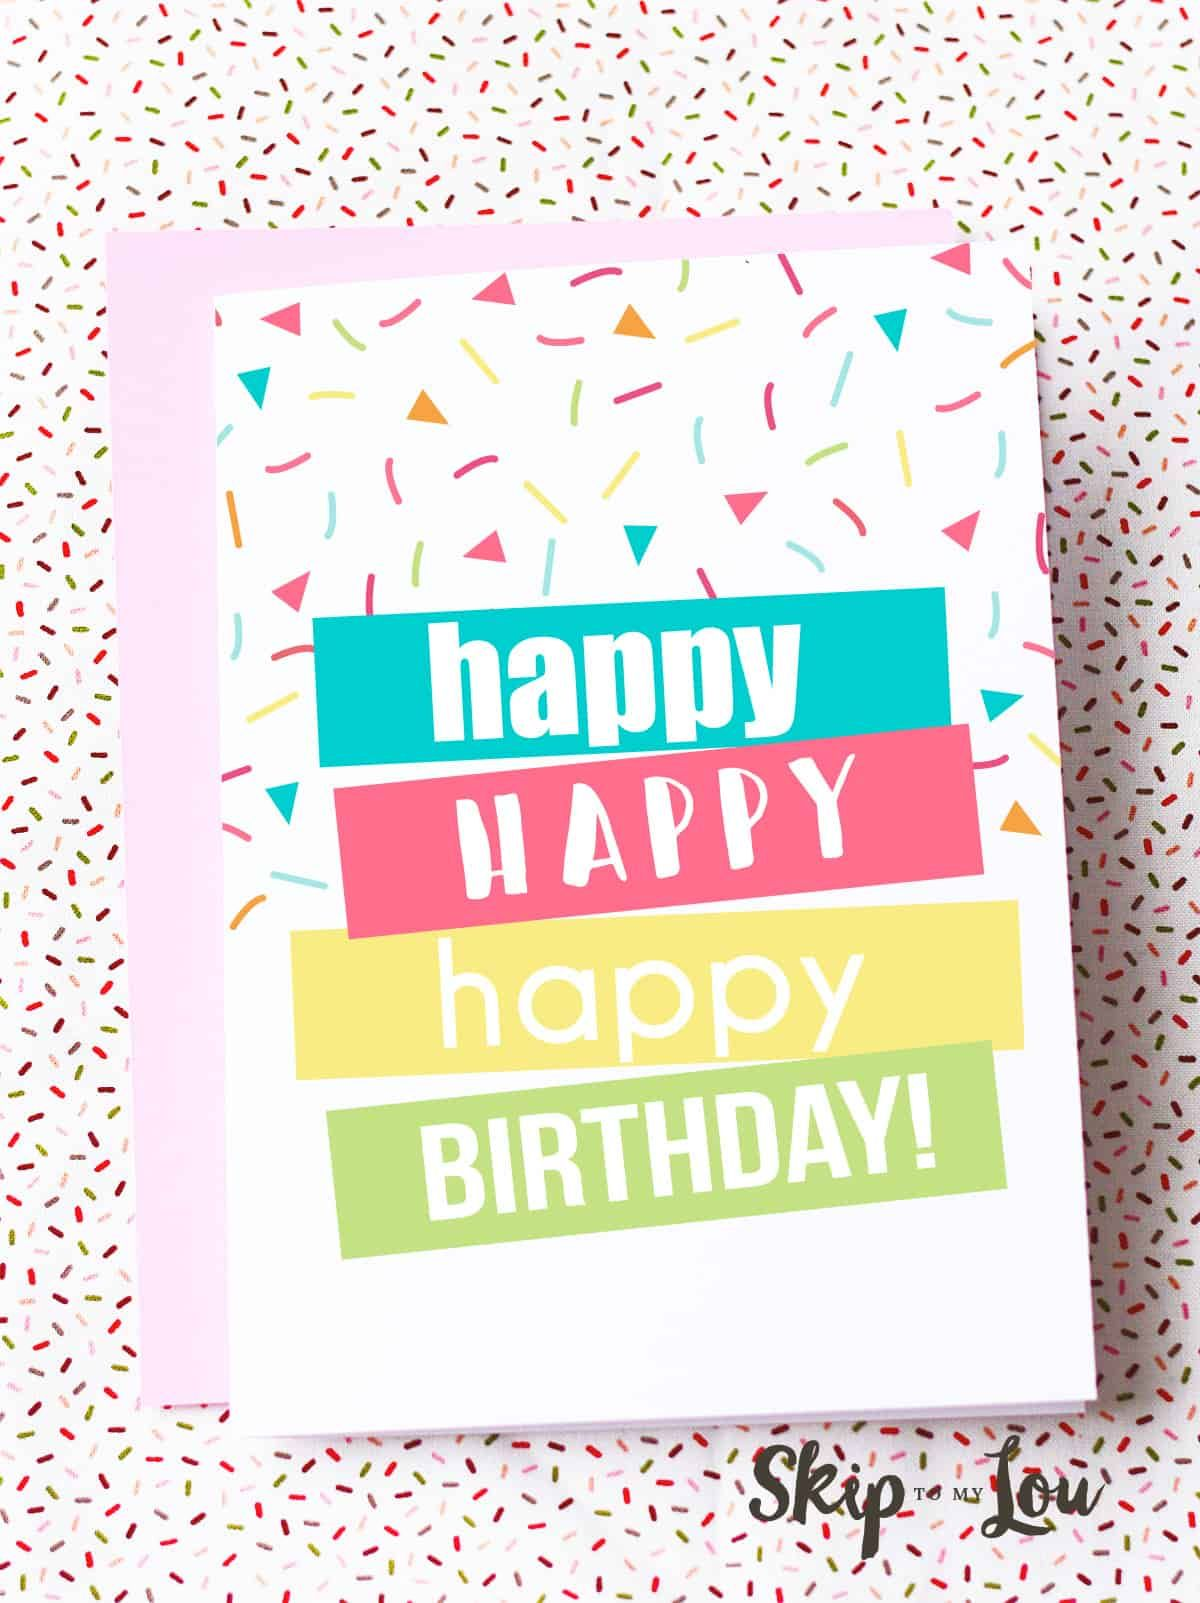 Free Printable Birthday Cards In 2021 Birthday Cards To Print Free Printable Birthday Cards Happy Birthday Cards Printable